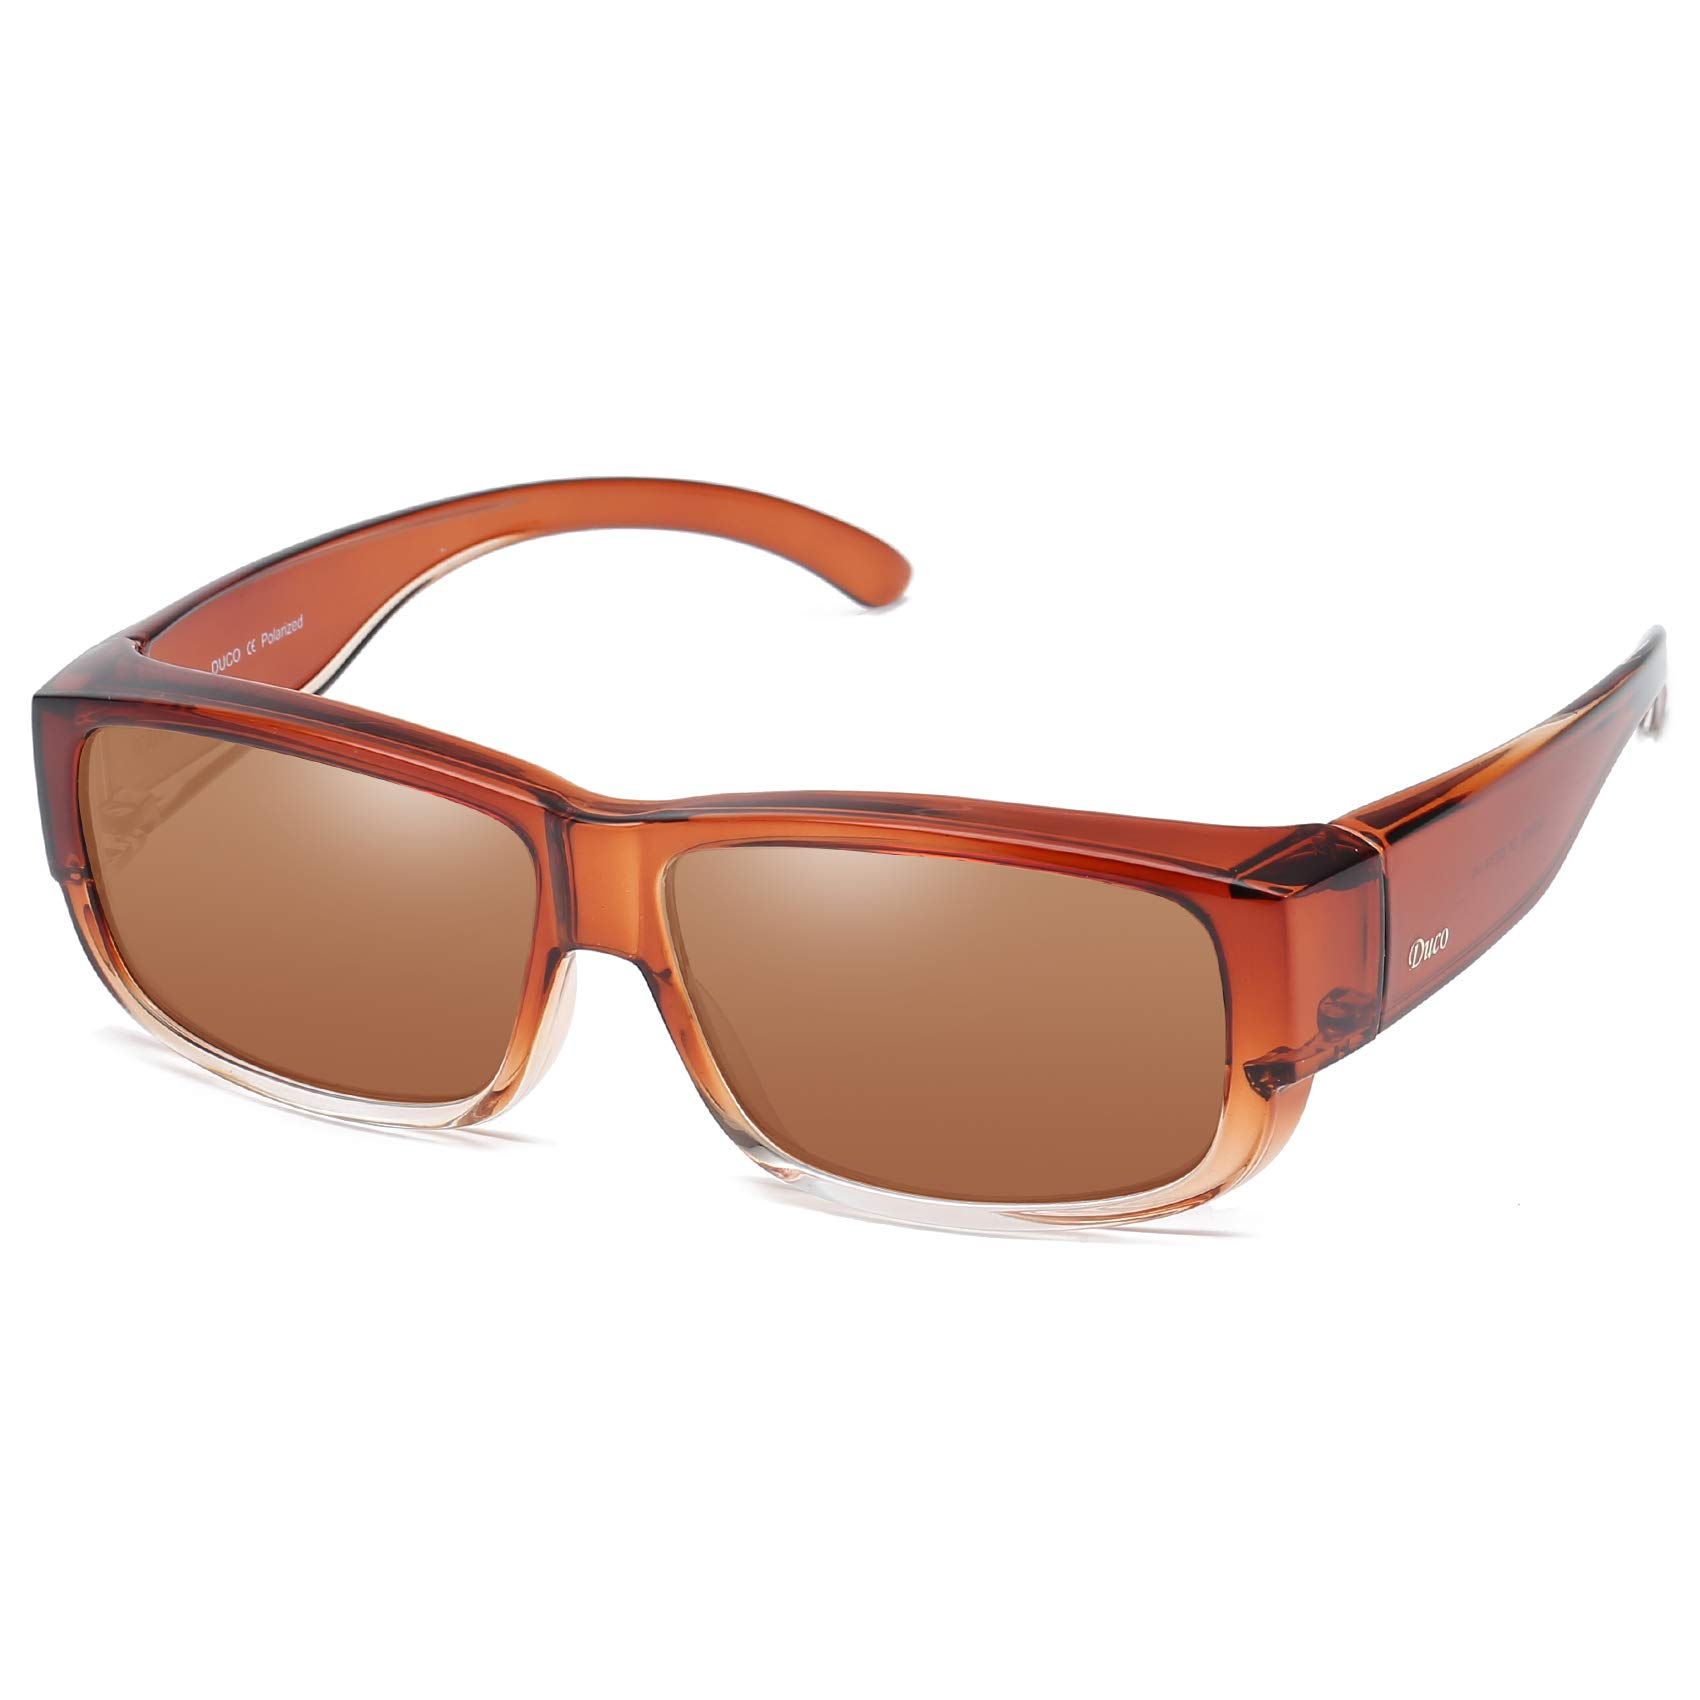 Duco Unisex Wear Over Prescription Glasses Rx Glasses Polarized Sunglasses 8956 Brown Frame Brown Lens by DUCO